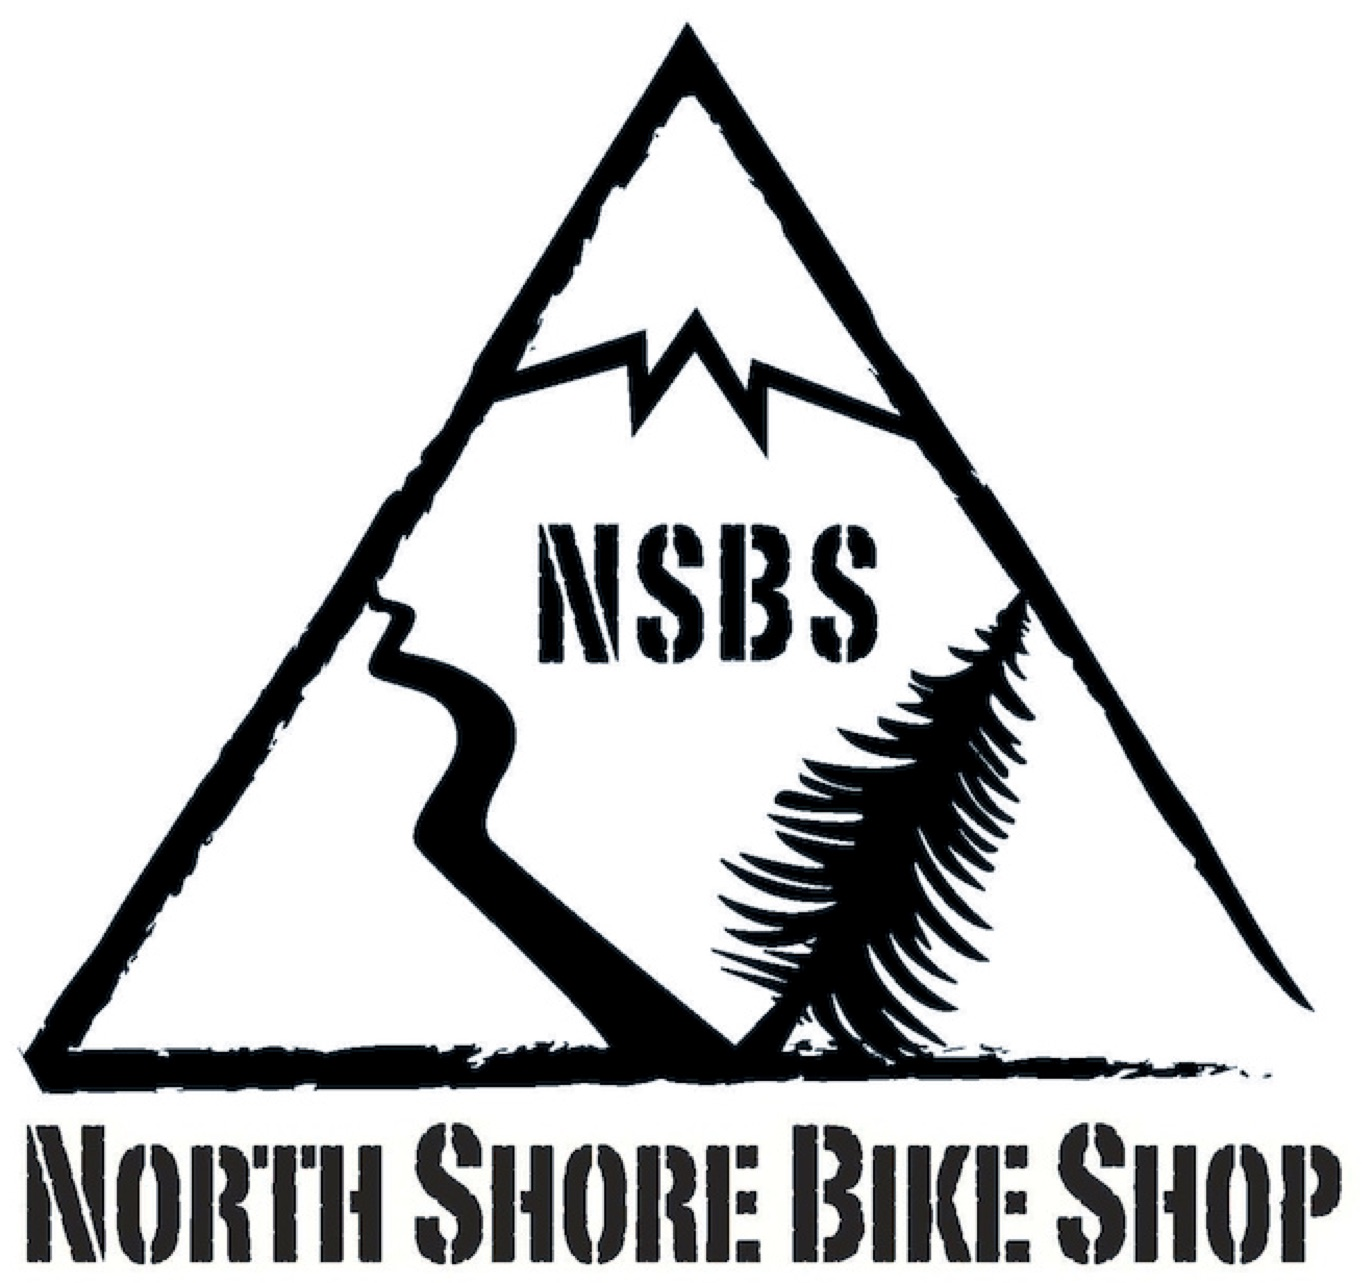 NorthShore Bike Shop